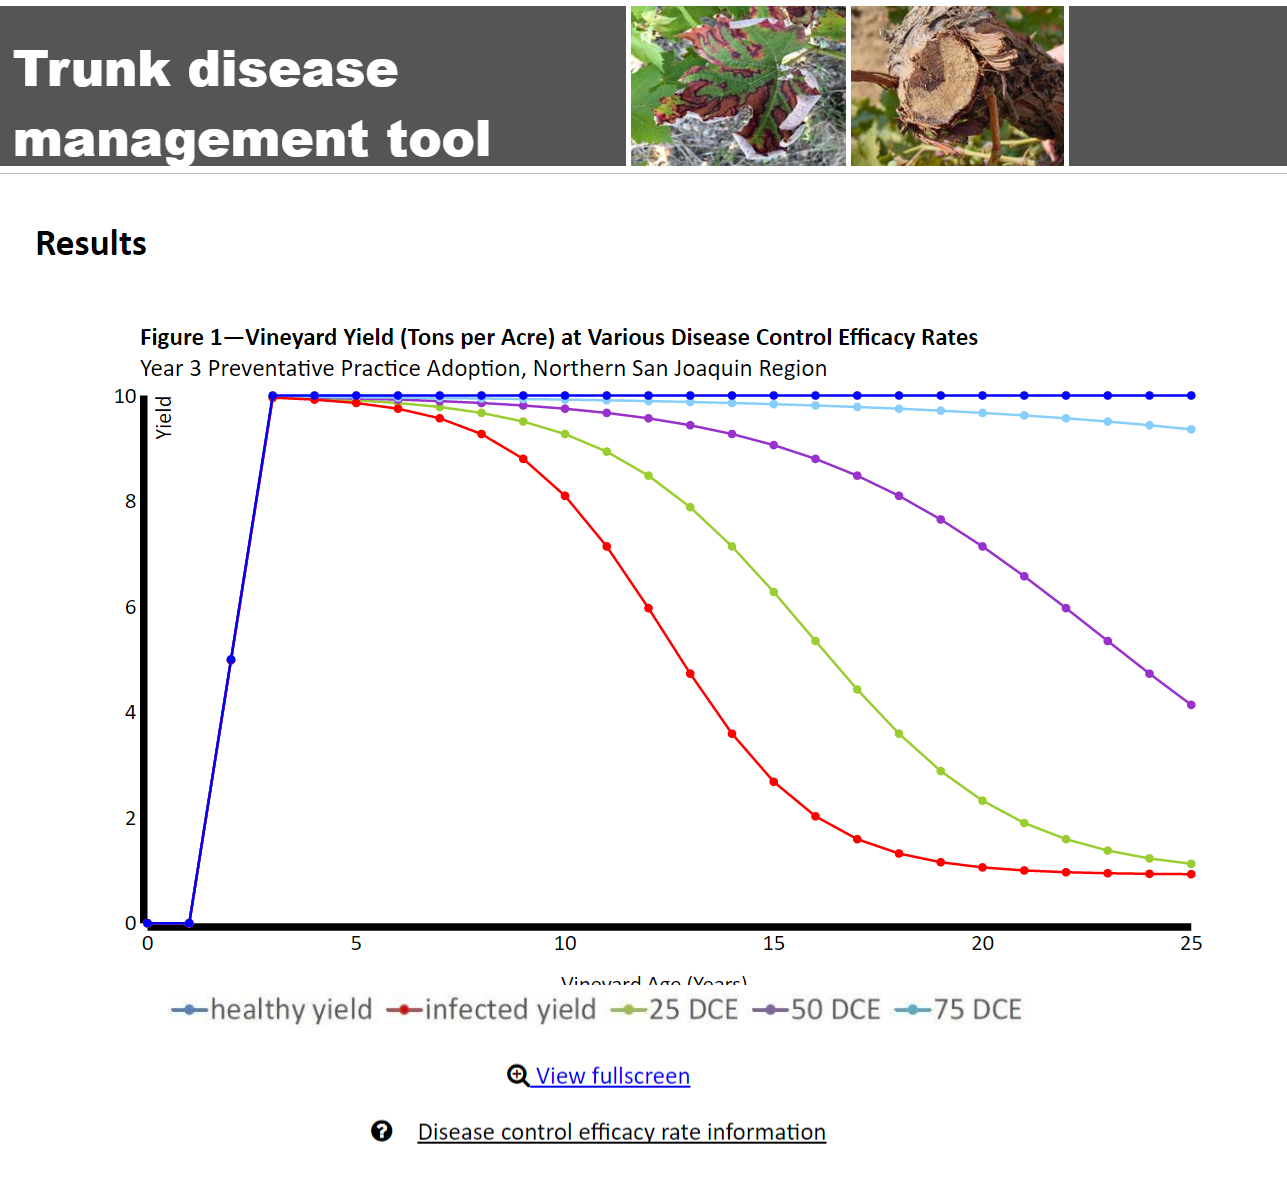 Economic analysis of early adaption of trunk disease management